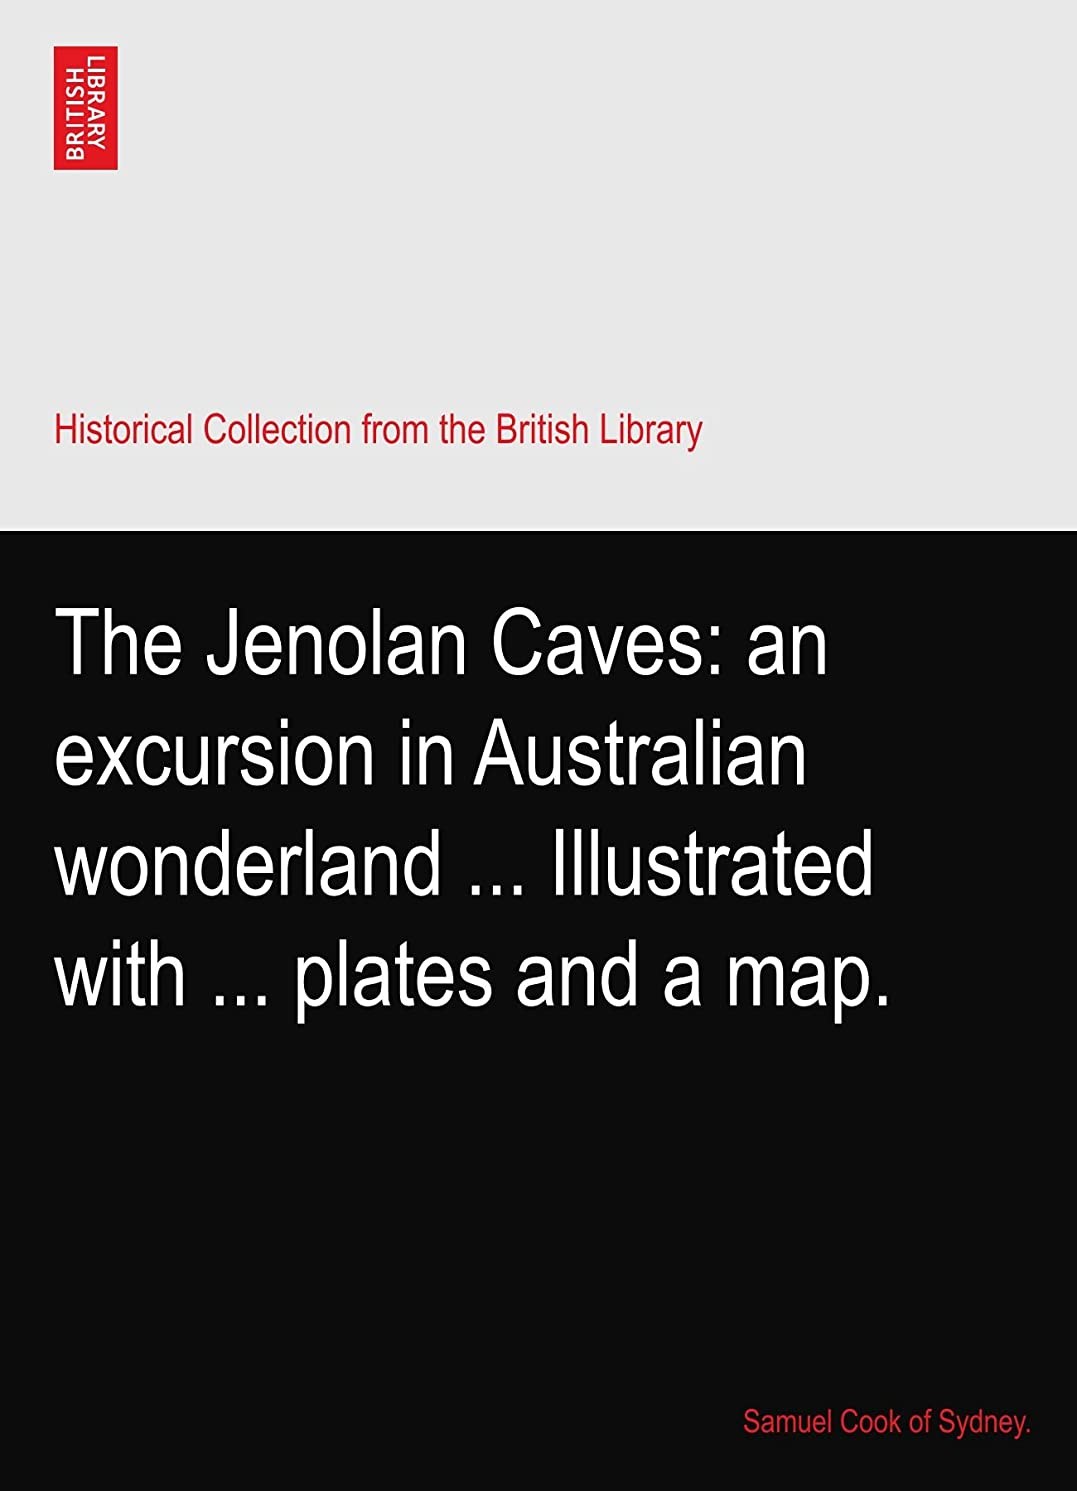 死にかけているブラウズヒップThe Jenolan Caves: an excursion in Australian wonderland ... Illustrated with ... plates and a map.